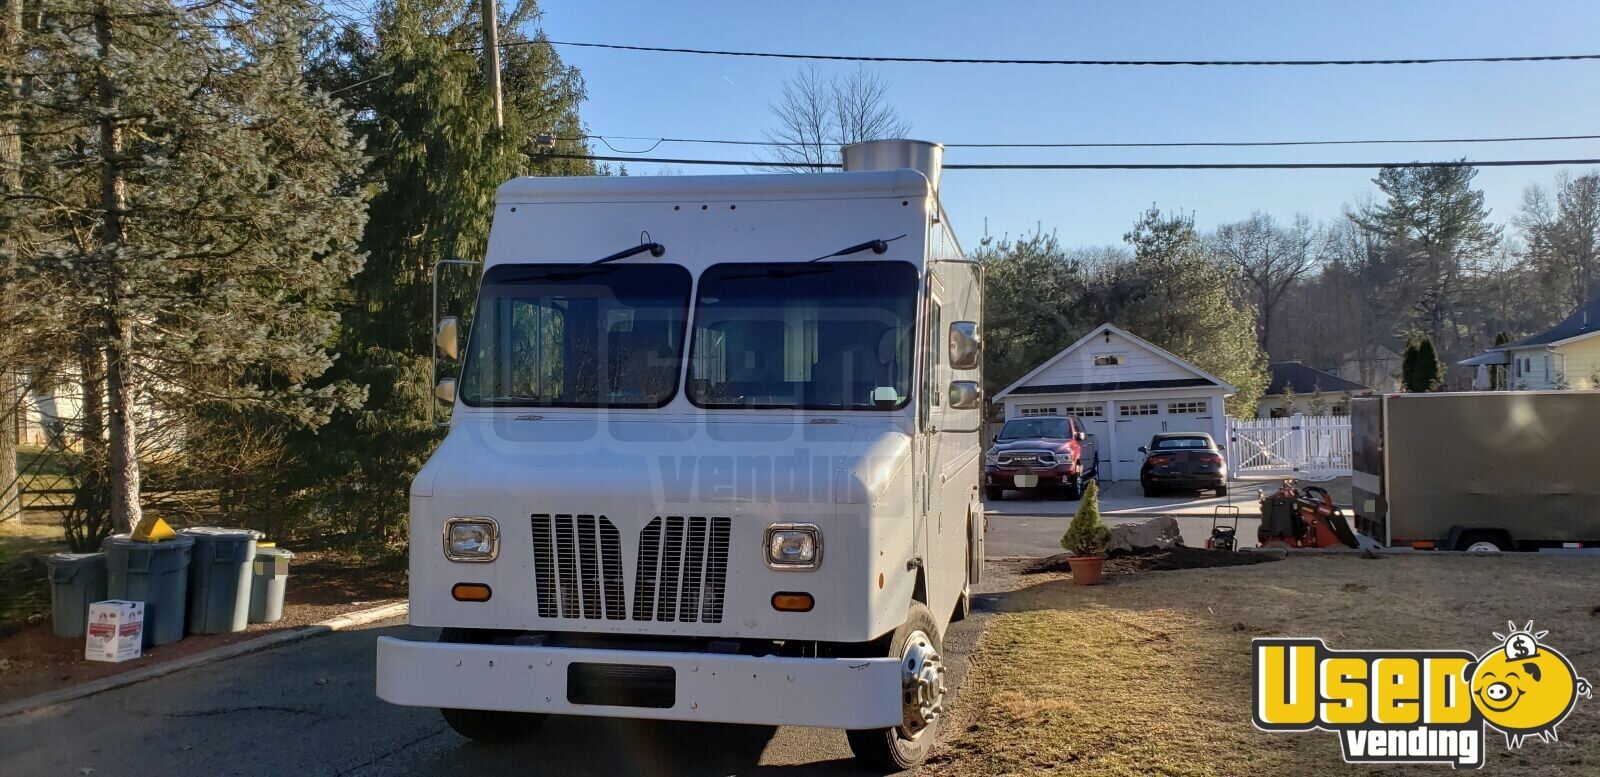 2011 Workhorse All-purpose Food Truck Backup Camera New Jersey Diesel Engine for Sale - 7